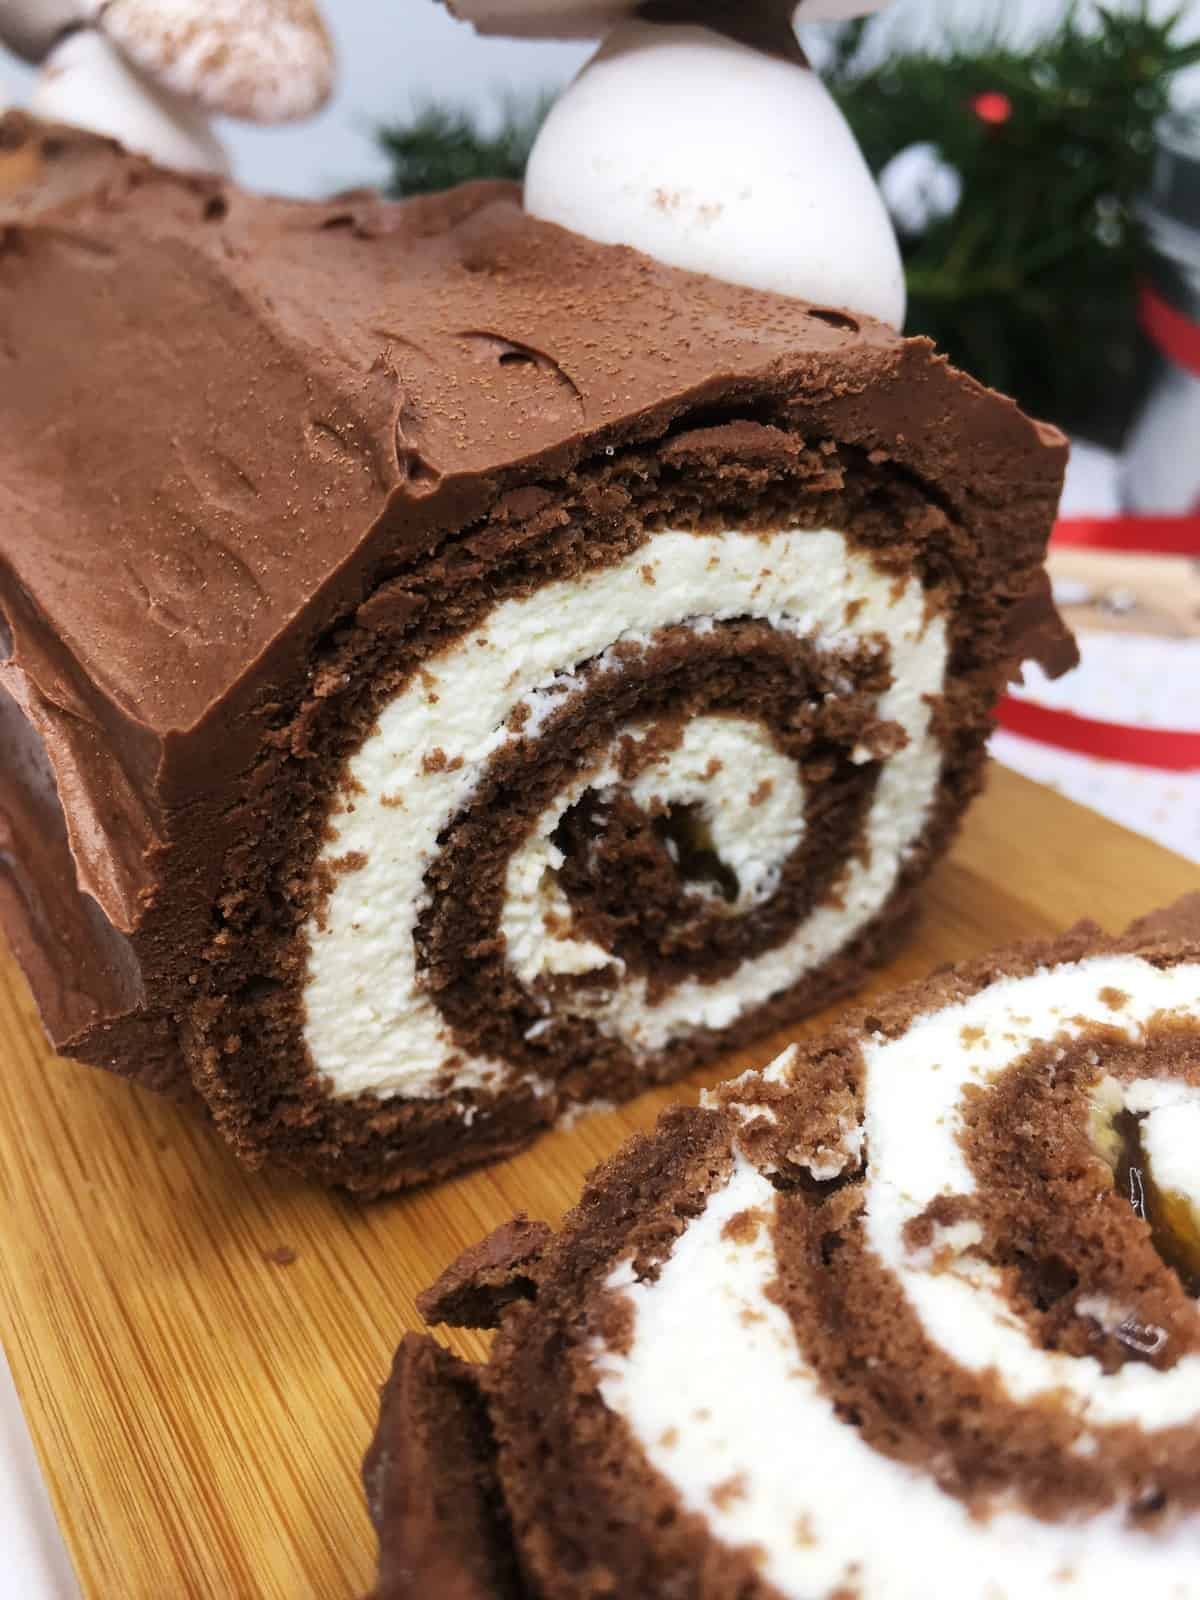 Rolled and decorated Buche de Noel with a swirl on a wooden board: Close up